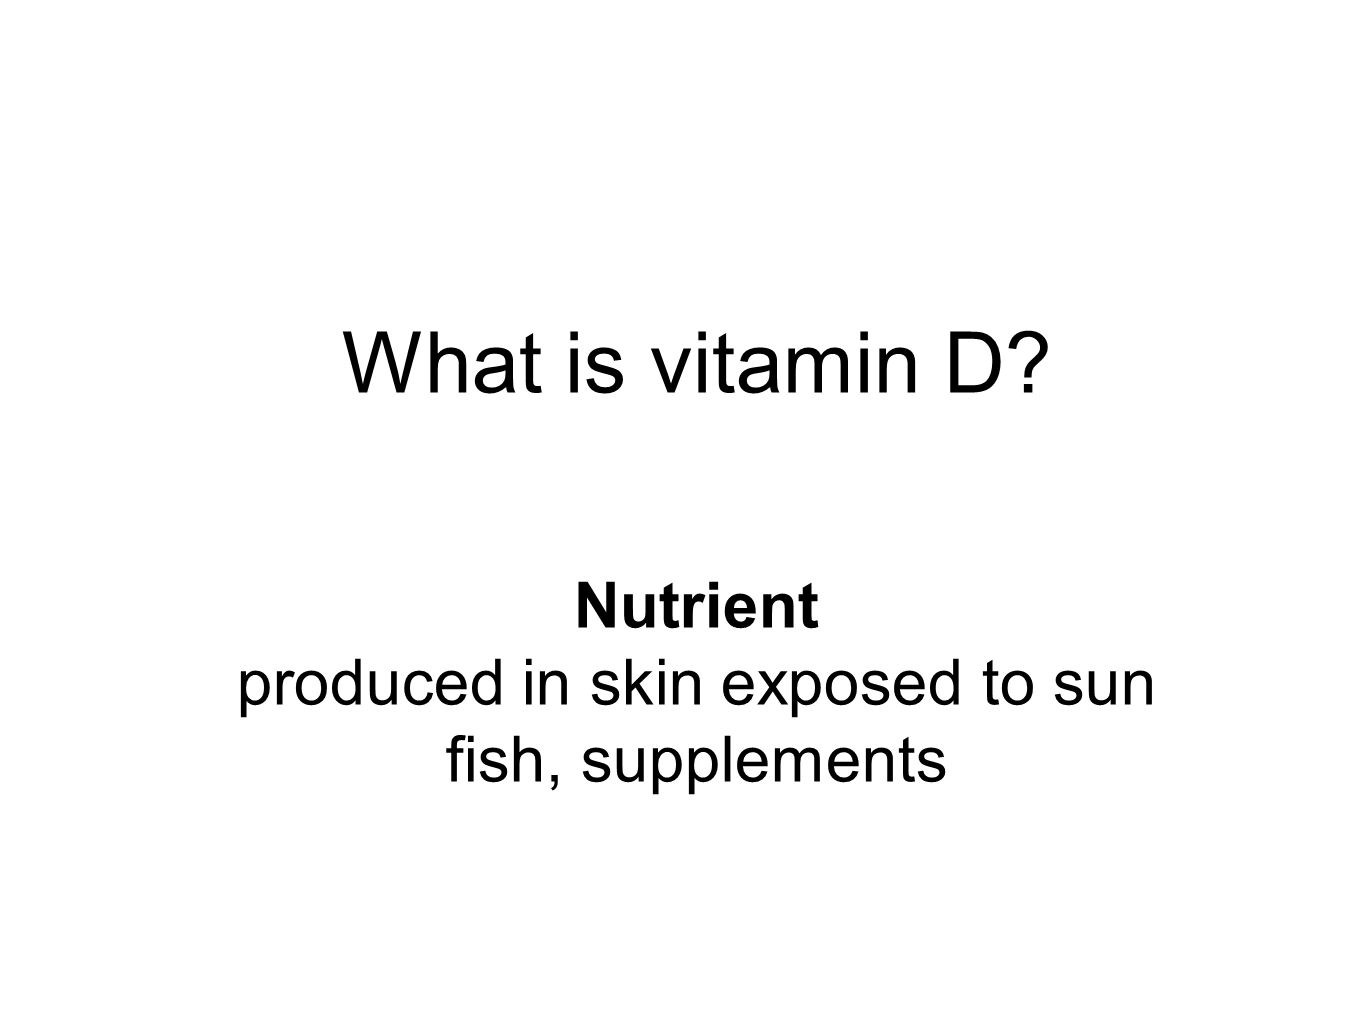 What is vitamin D Nutrient produced in skin exposed to sun fish, supplements